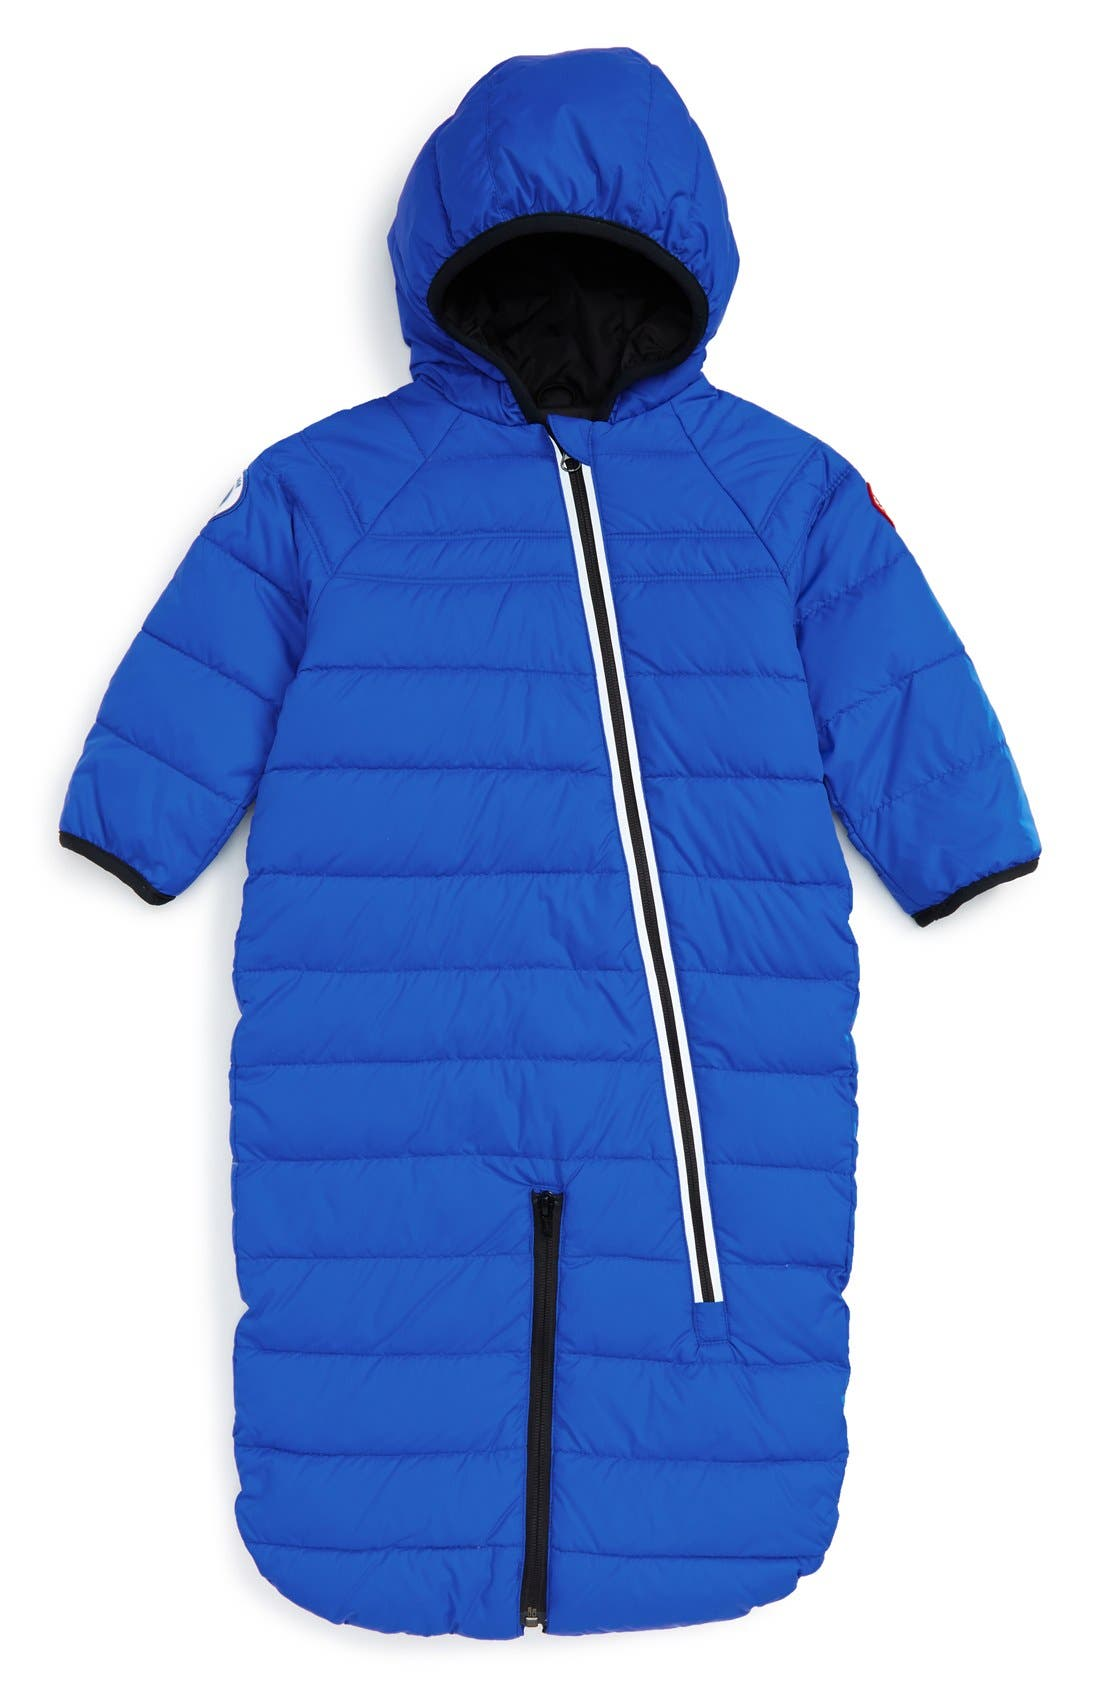 'Pup' Water Resistant Hooded Down Bunting,                         Main,                         color, ROYAL BLUE